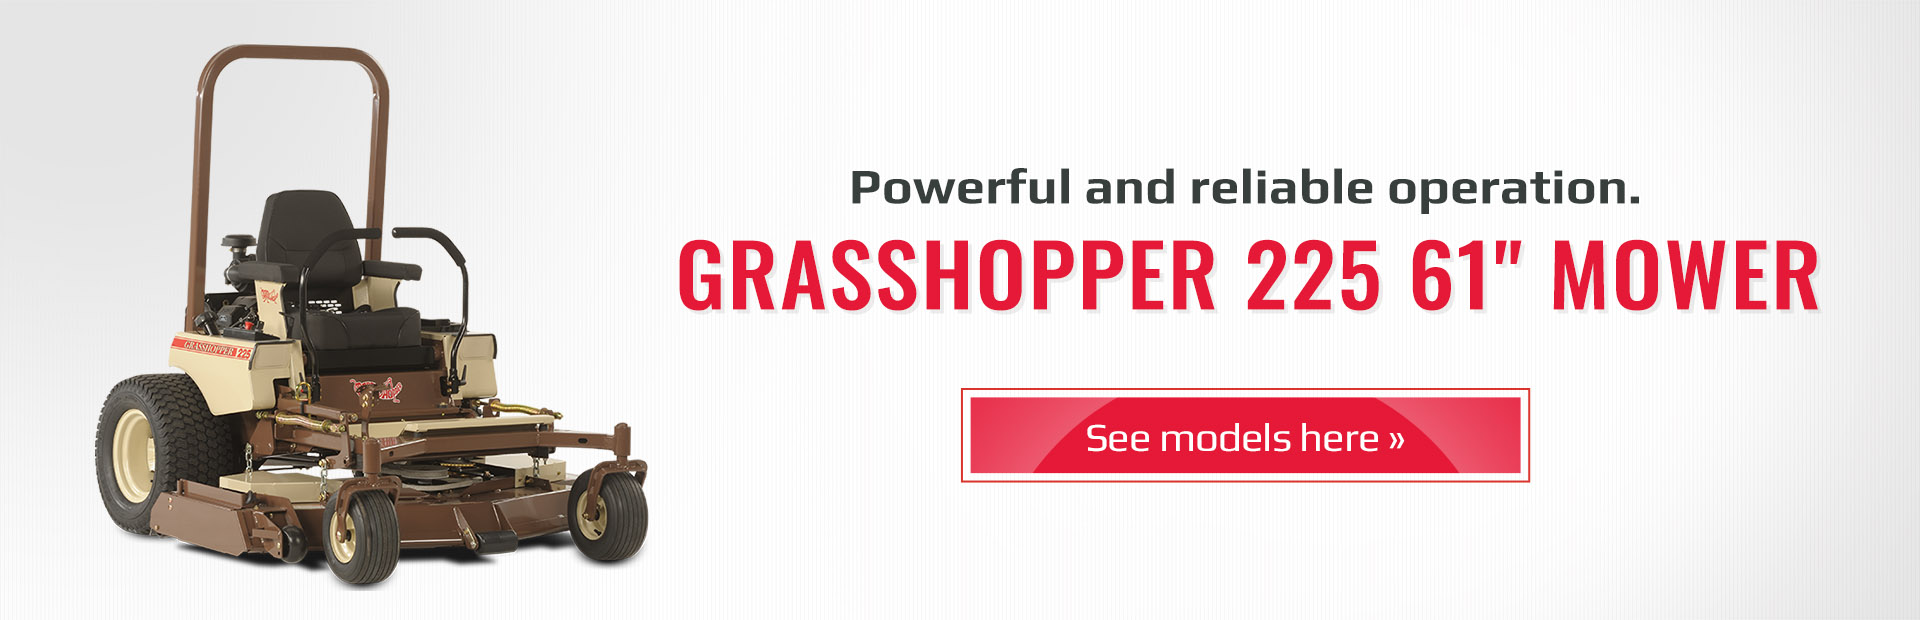 Grasshopper 225 61' Mowers: Click here to see the models.